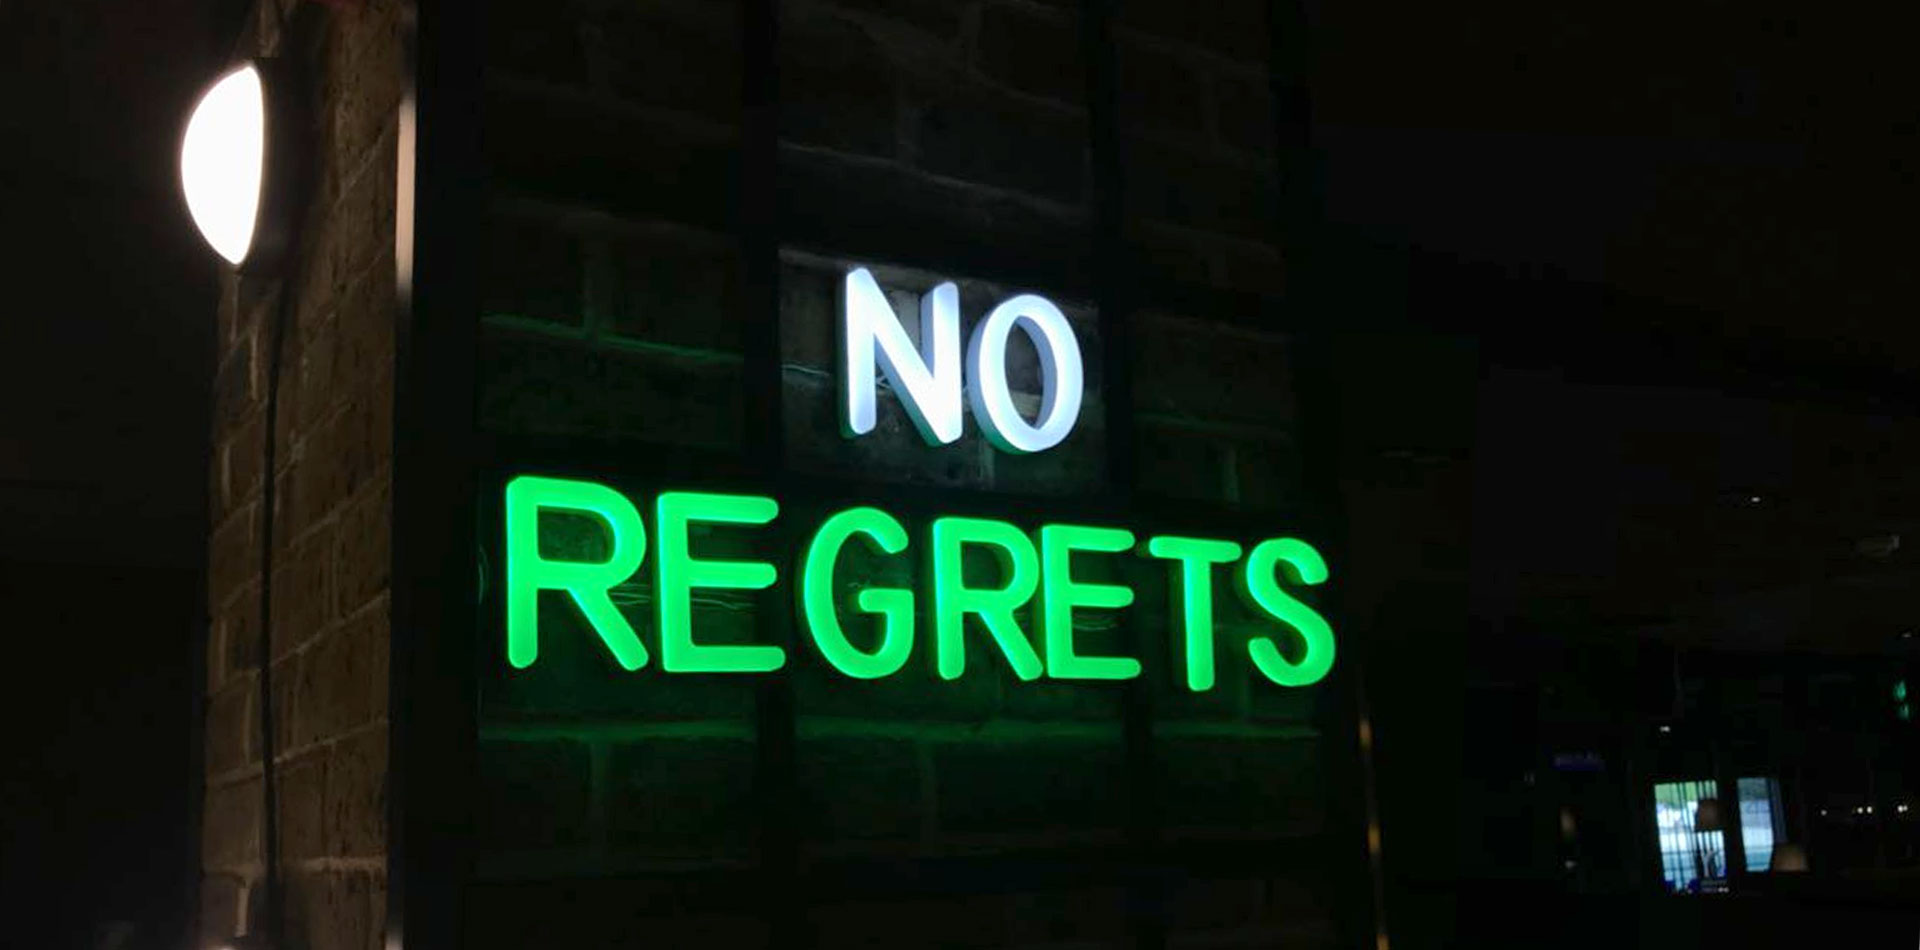 No Regrets Neon Signage